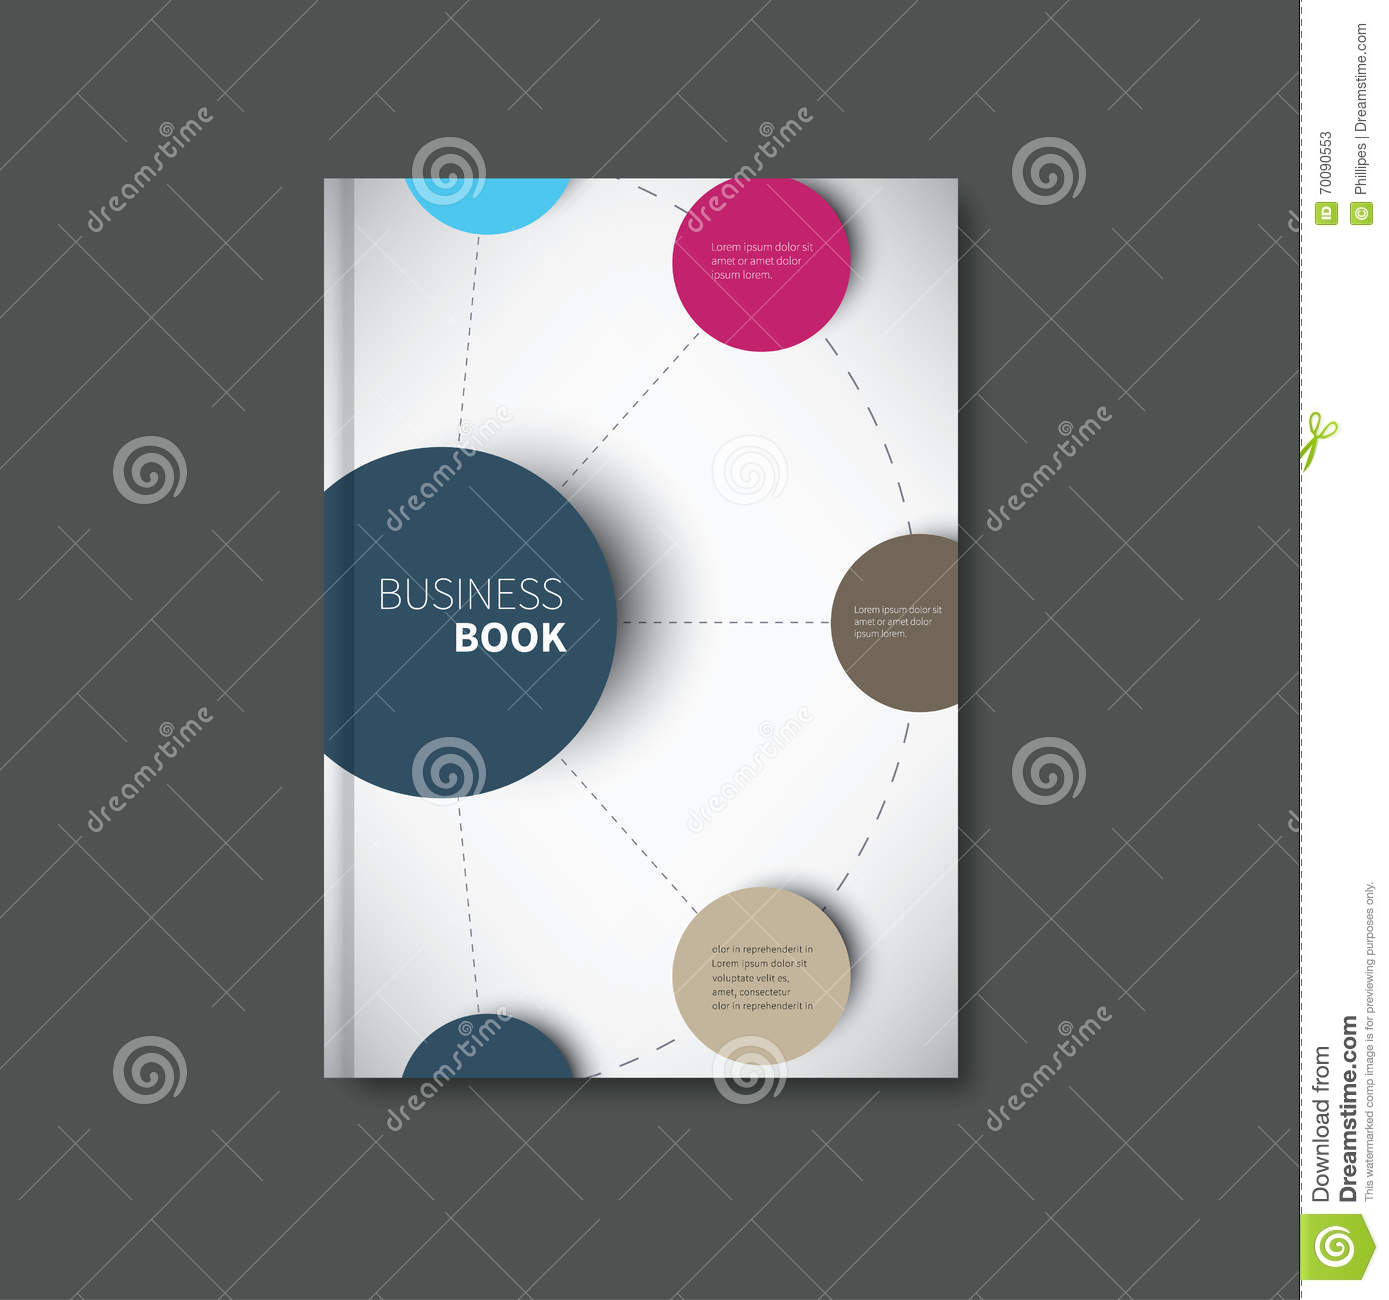 How To Make A Book Cover Using Illustrator ~ Infographic book cover vector illustration cartoondealer